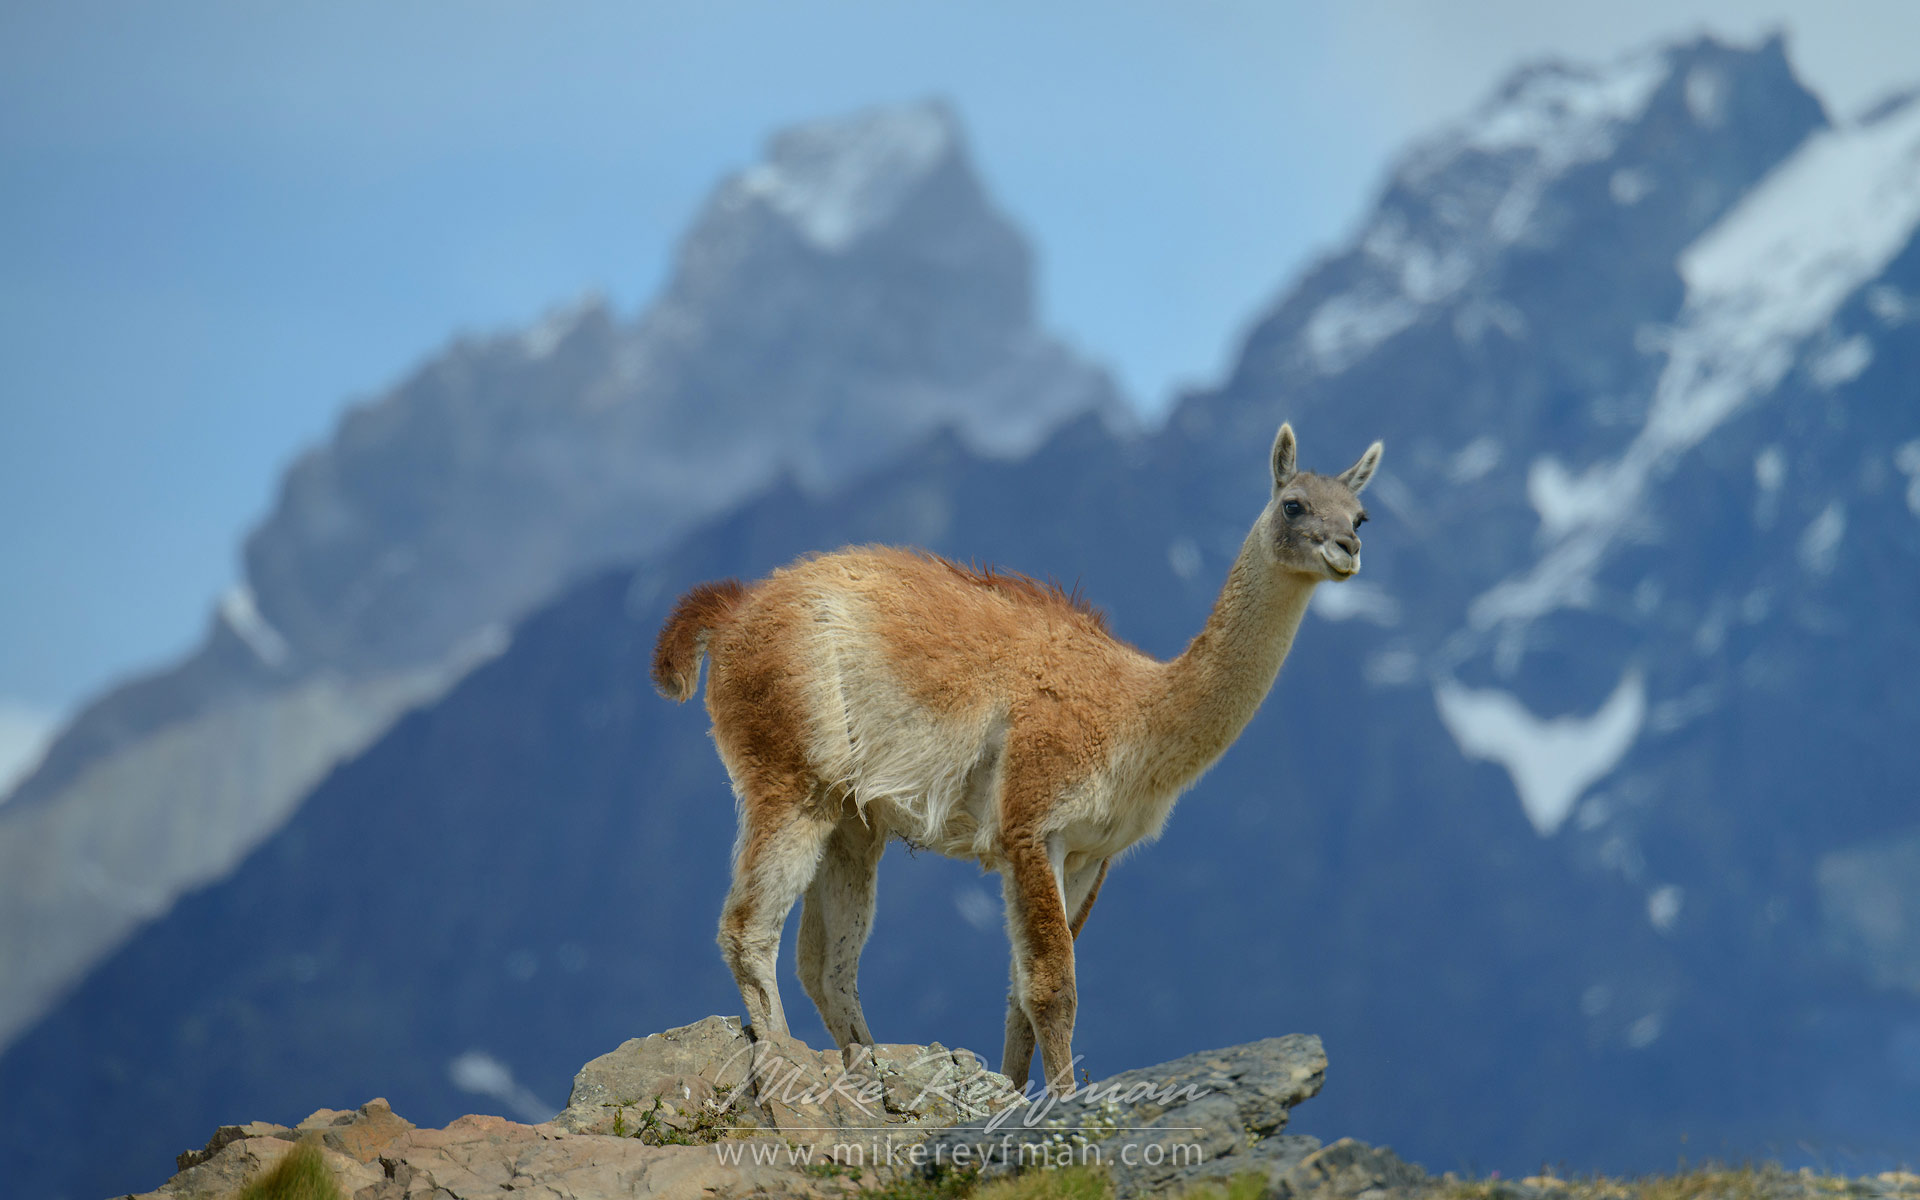 Guanaco (Lama guanicoe) standing on the rocky hill top. Torres del Paine National Park, Magallanes and Antartica Chilena Region XII, Patagonia, Chile. - Patagonia-Wildlife-and-Horses - Mike Reyfman Photography